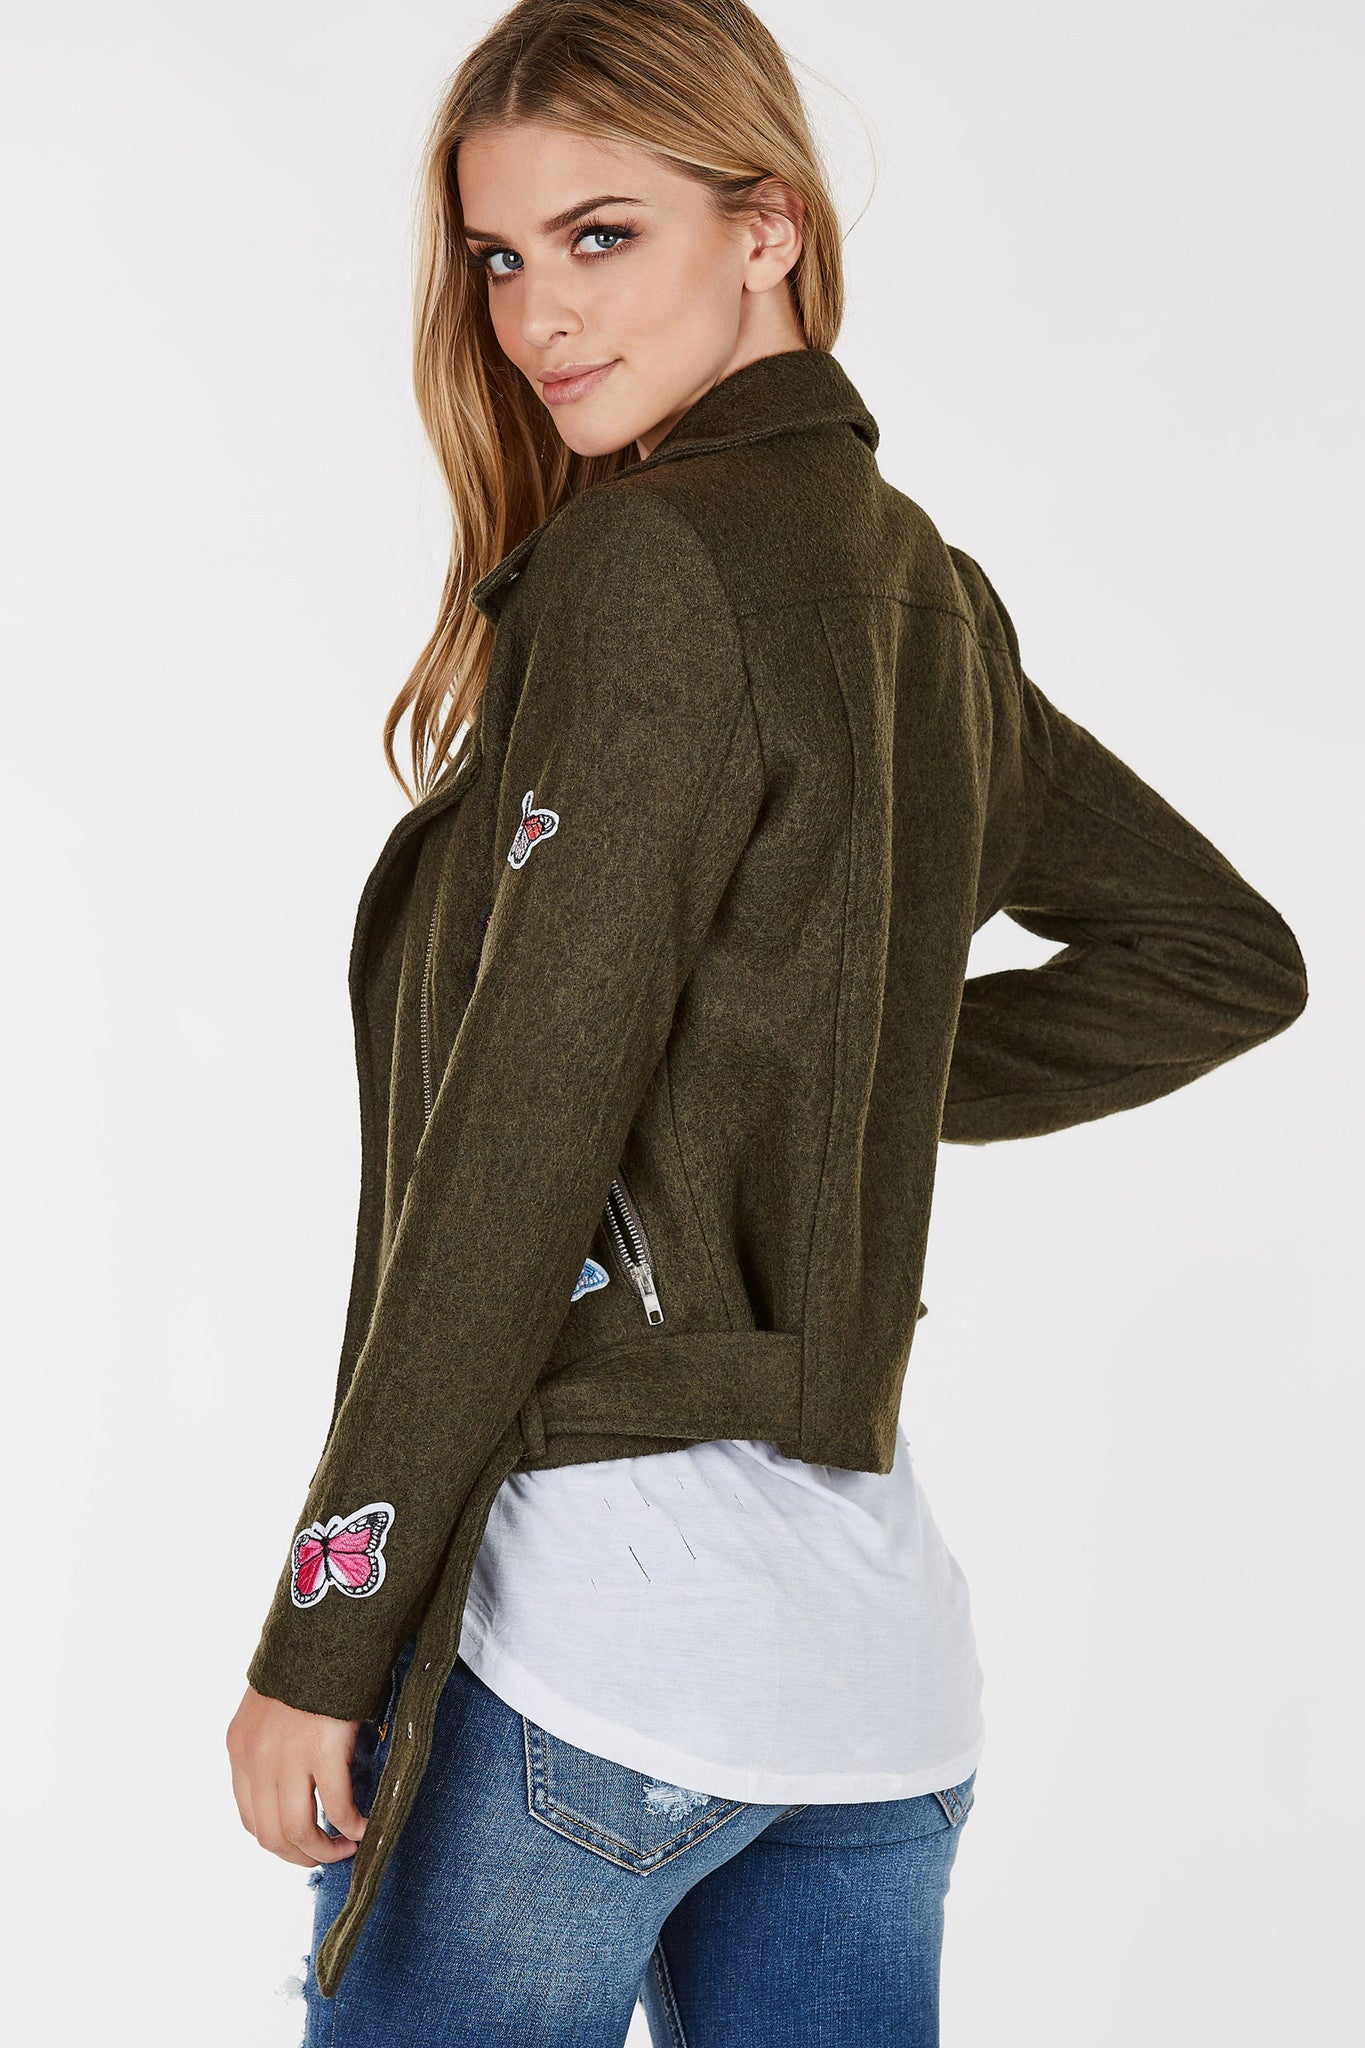 Wool blend moto jacket with butterfly patches throughout the front. Assymetrical front zip closure.